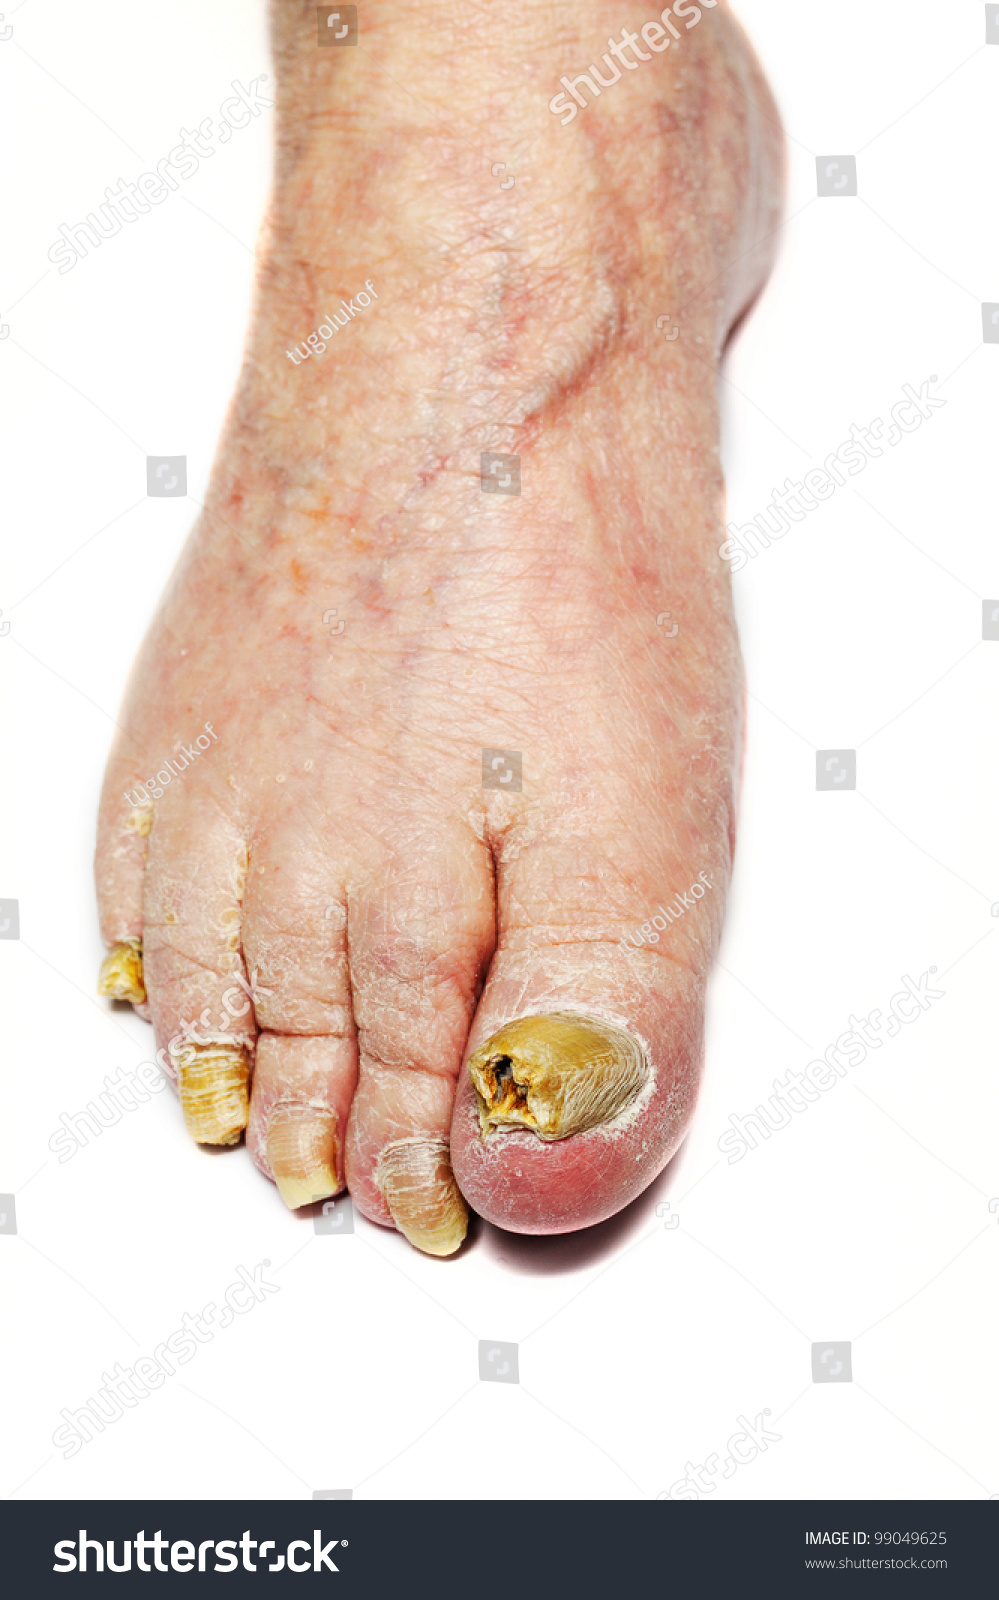 Fungus Infection On Nails Mans Foot Stock Photo 99049625 ...